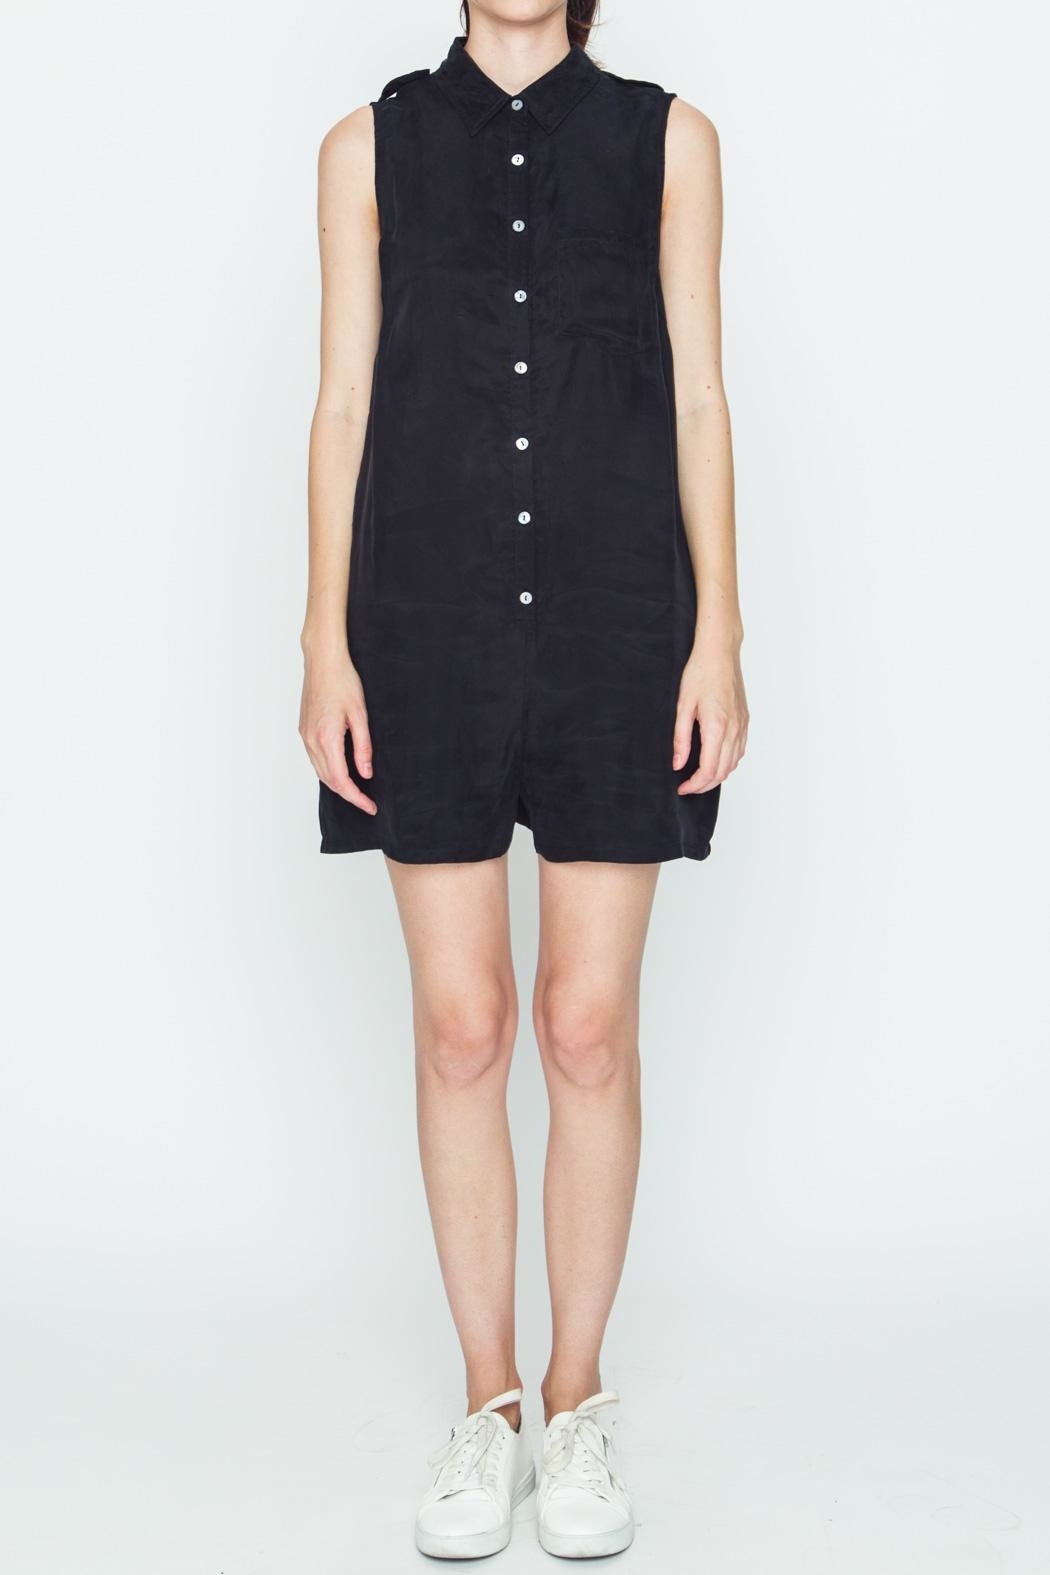 Movint Black Boxy Romper - Front Cropped Image